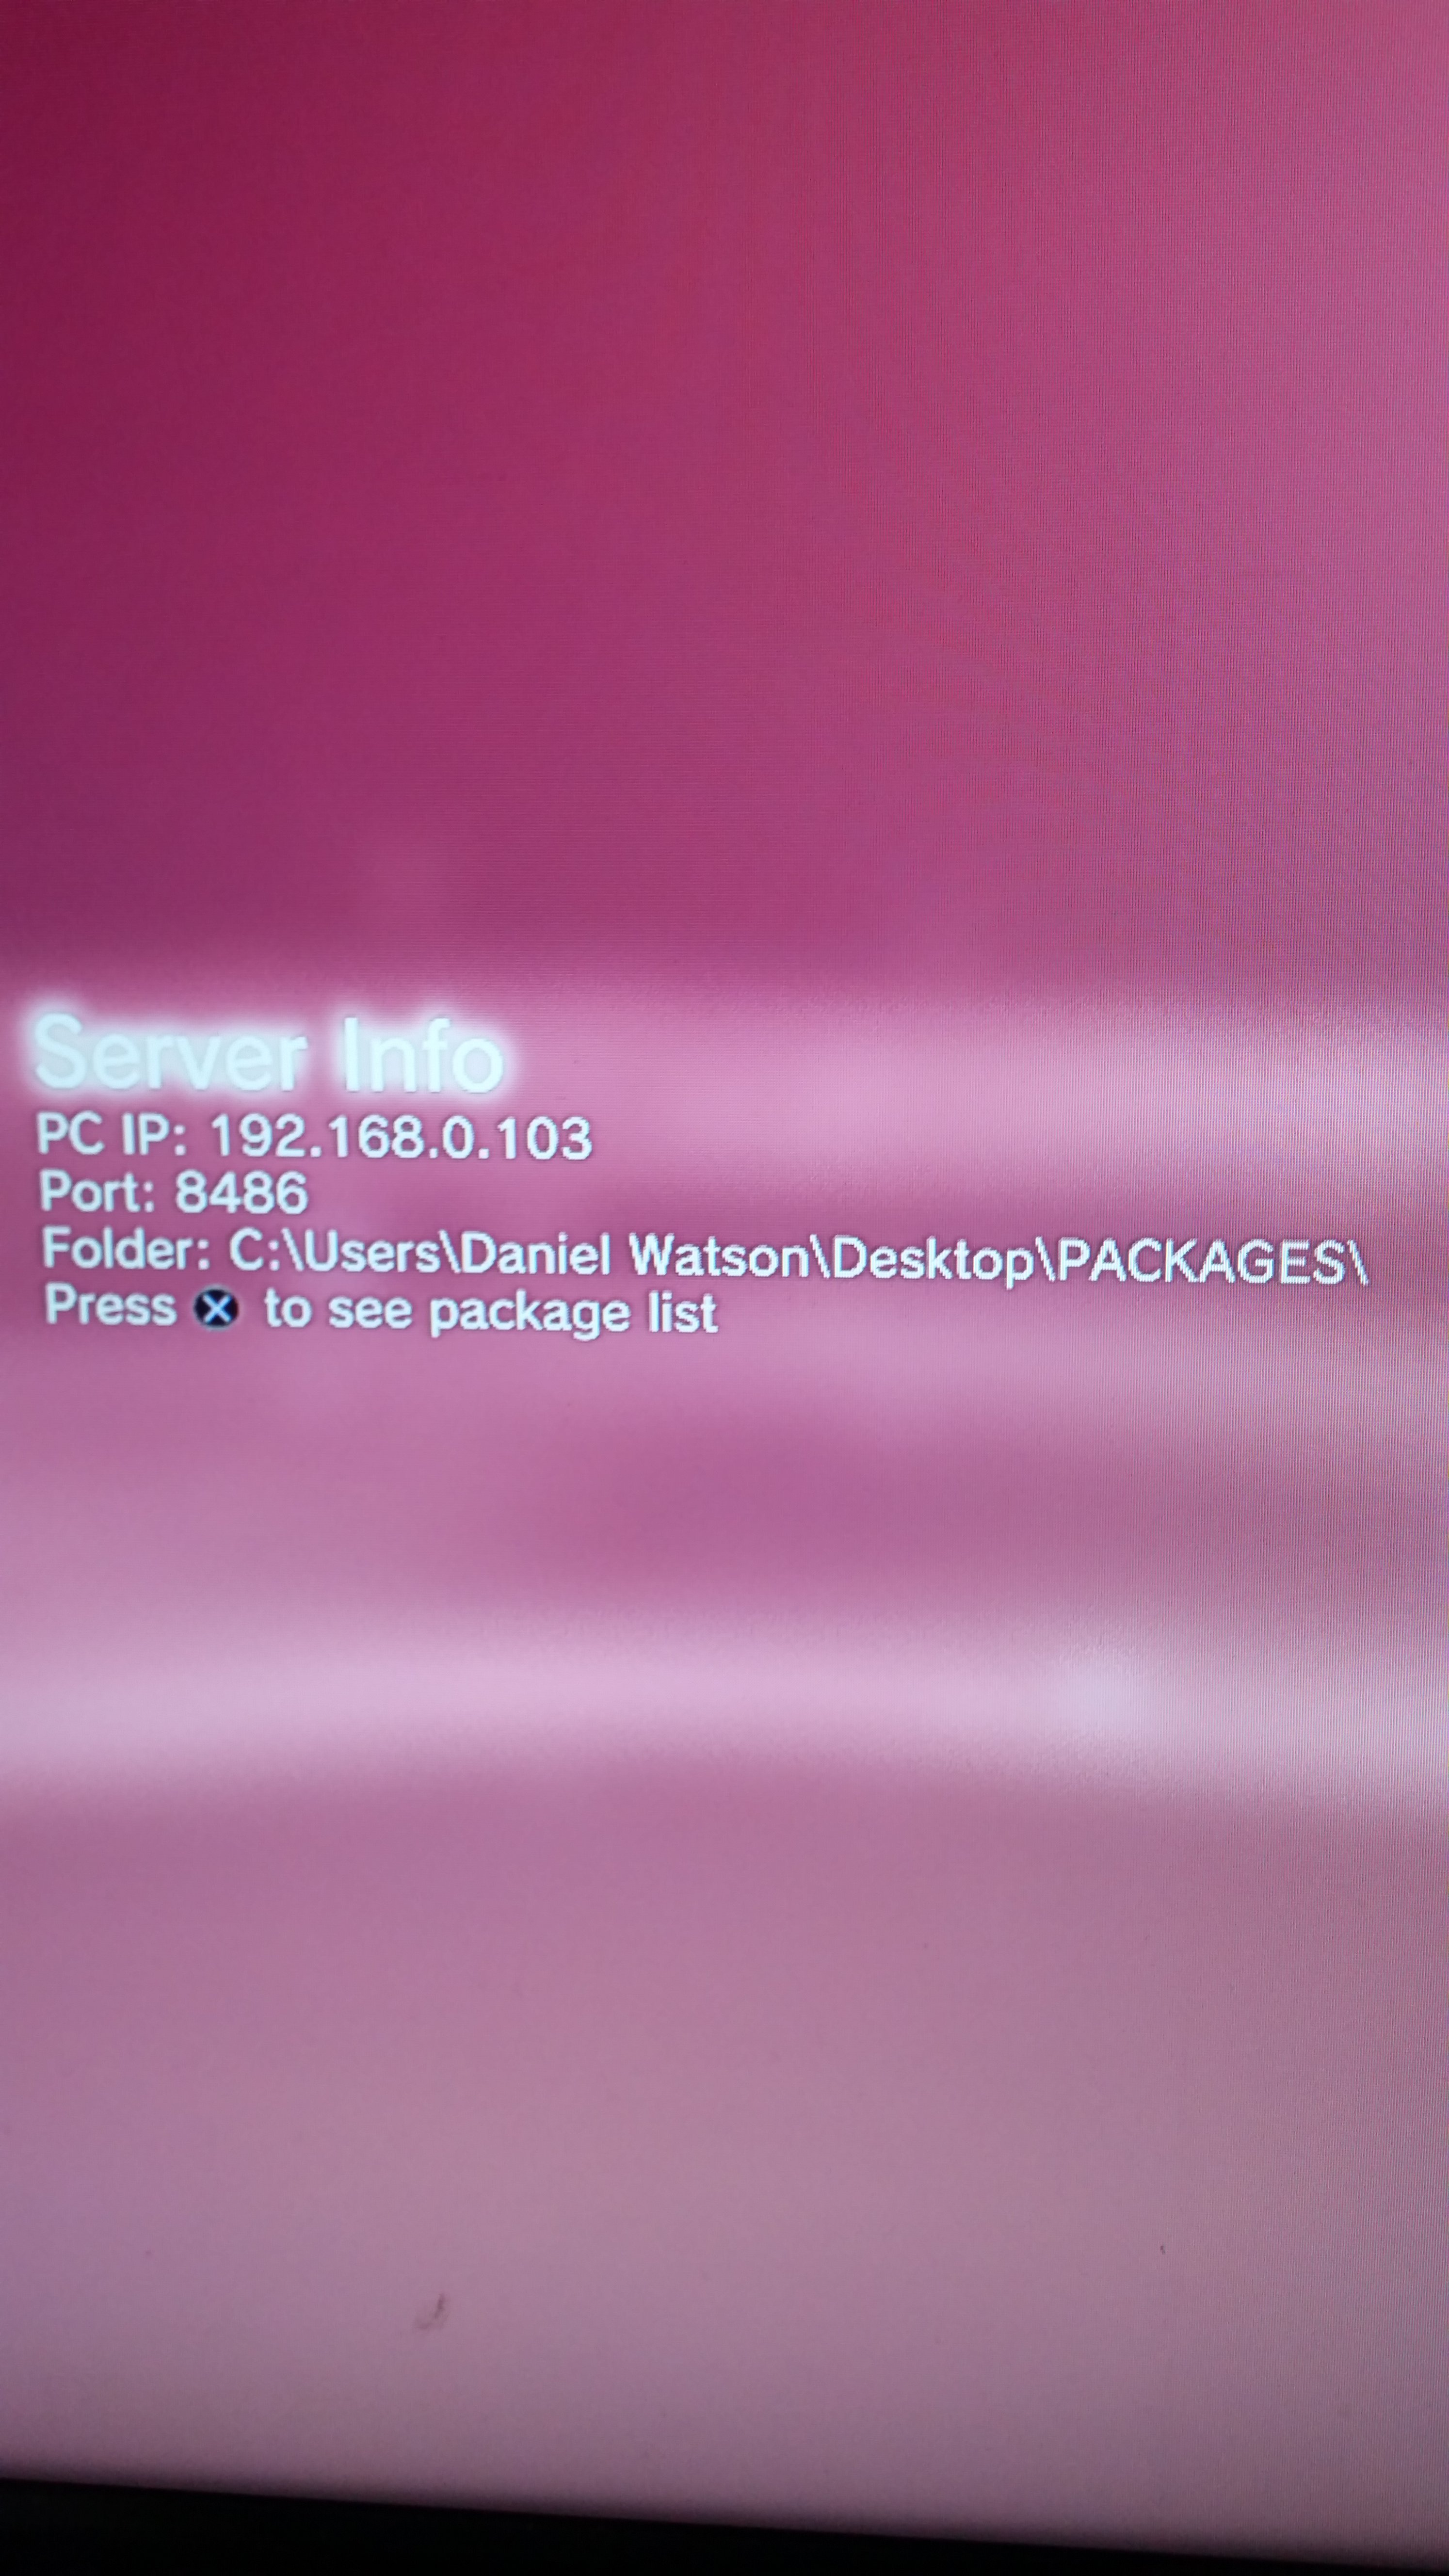 PS3 - PKG Linker 2 0 - Serve Packages to your PS3 (HAN/CFW